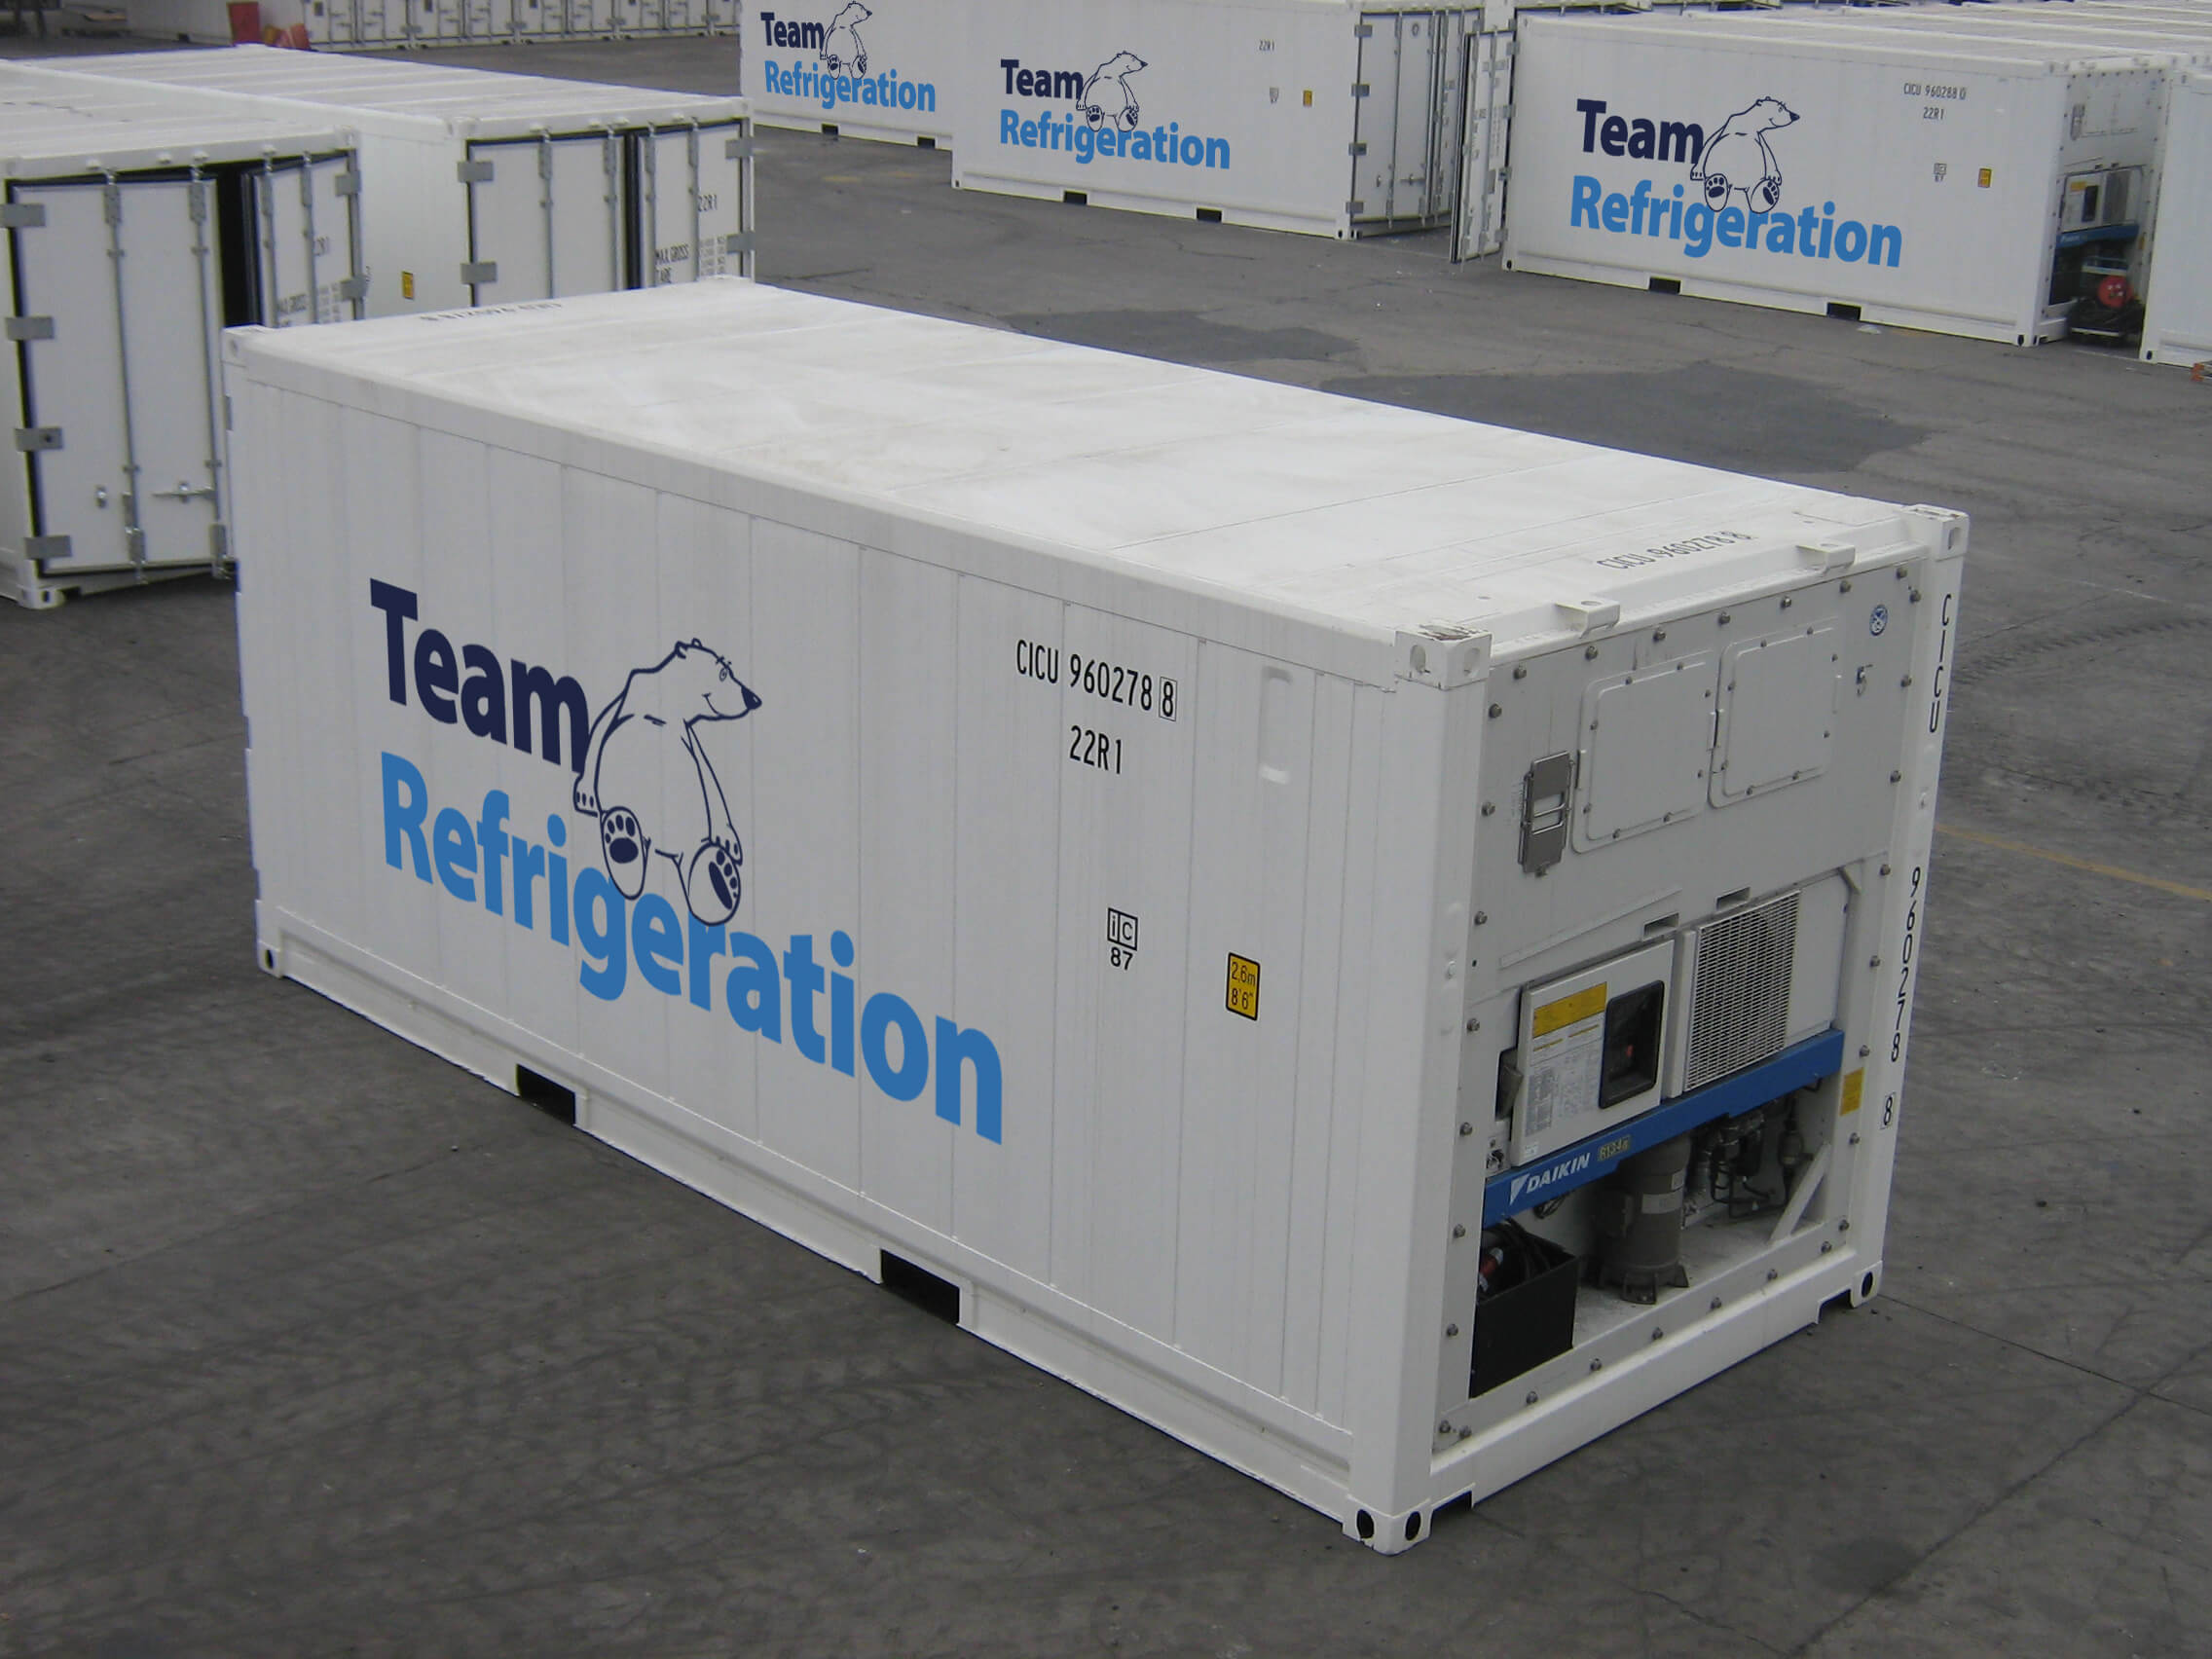 20ft Refrigerated Container for Hire